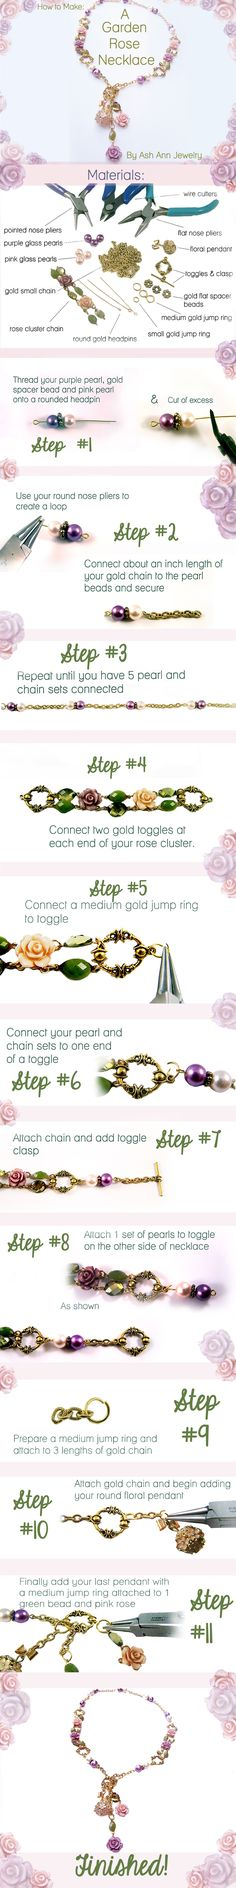 How To Make Garden Rose Necklace  To See The slide show http://slidesha.re/1ldlFNm